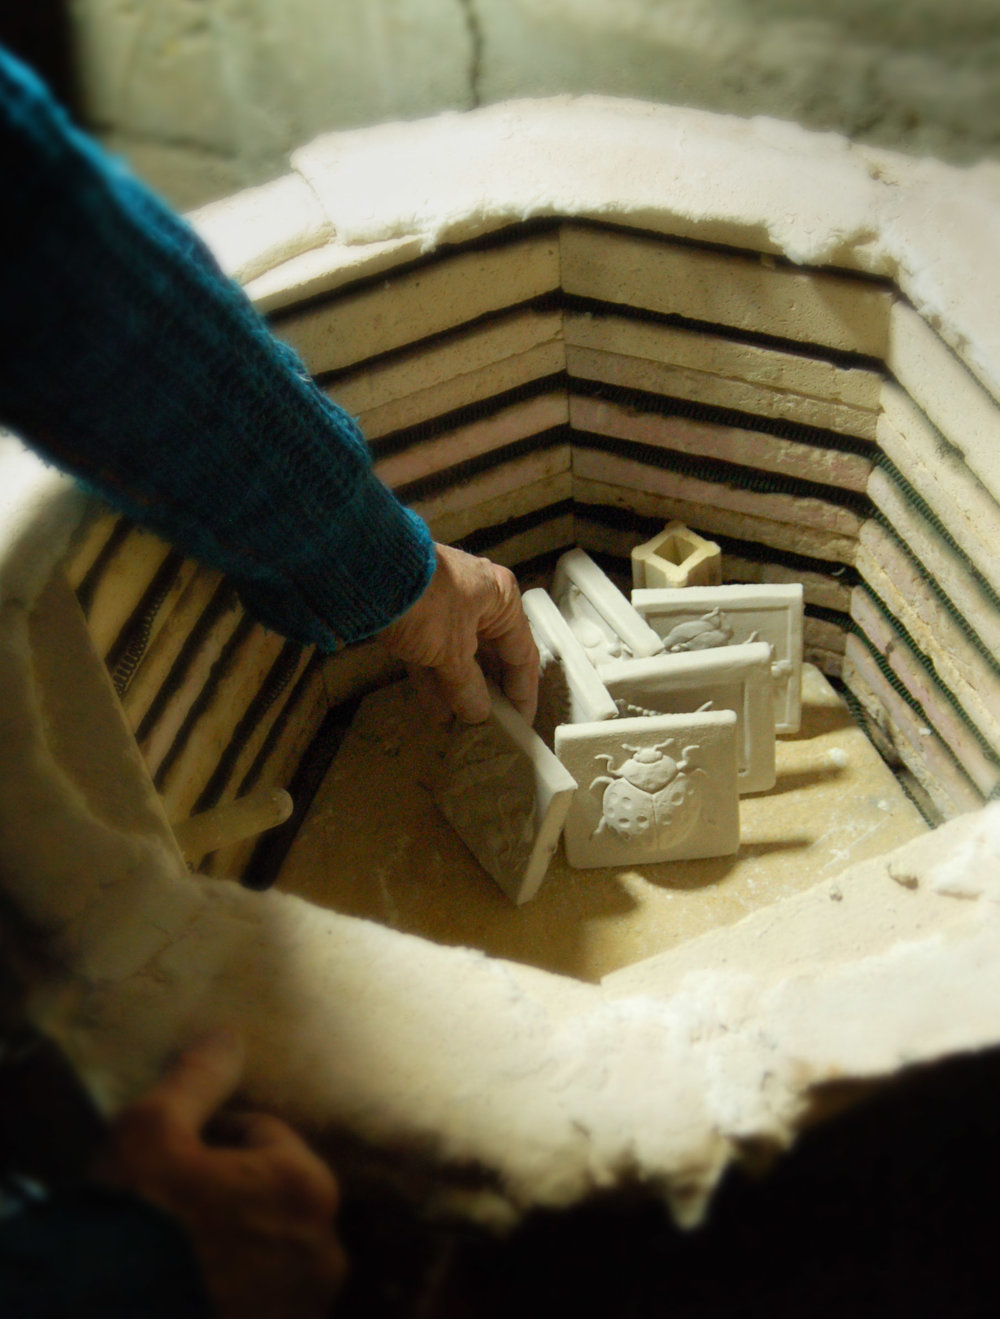 studio bisque kiln.jpg